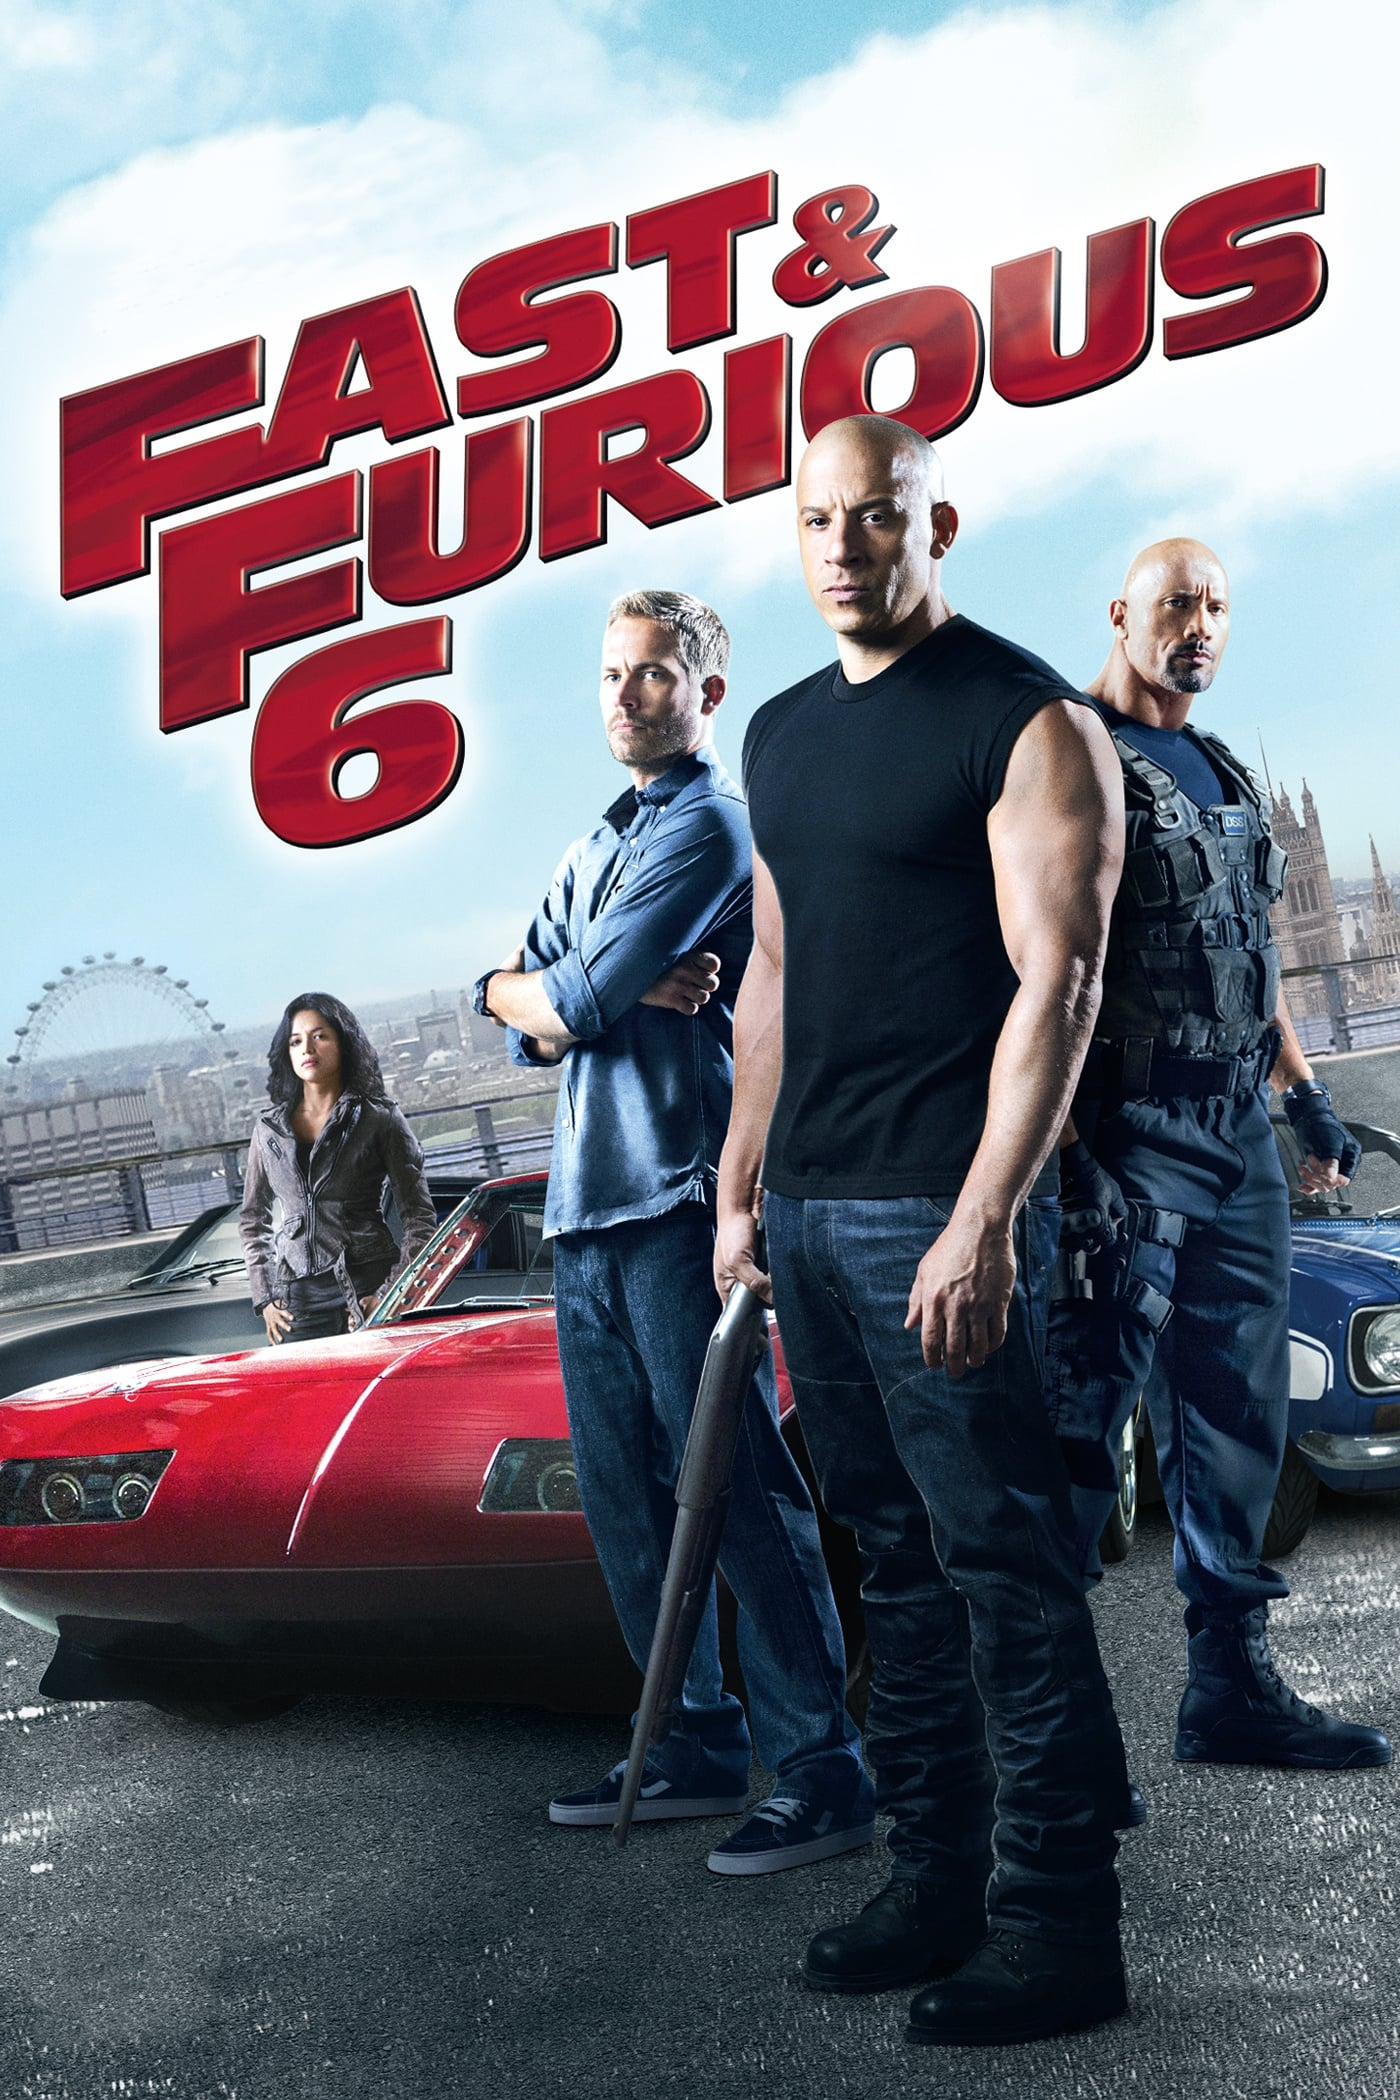 fast furious 6 2013 gratis films kijken met ondertiteling. Black Bedroom Furniture Sets. Home Design Ideas